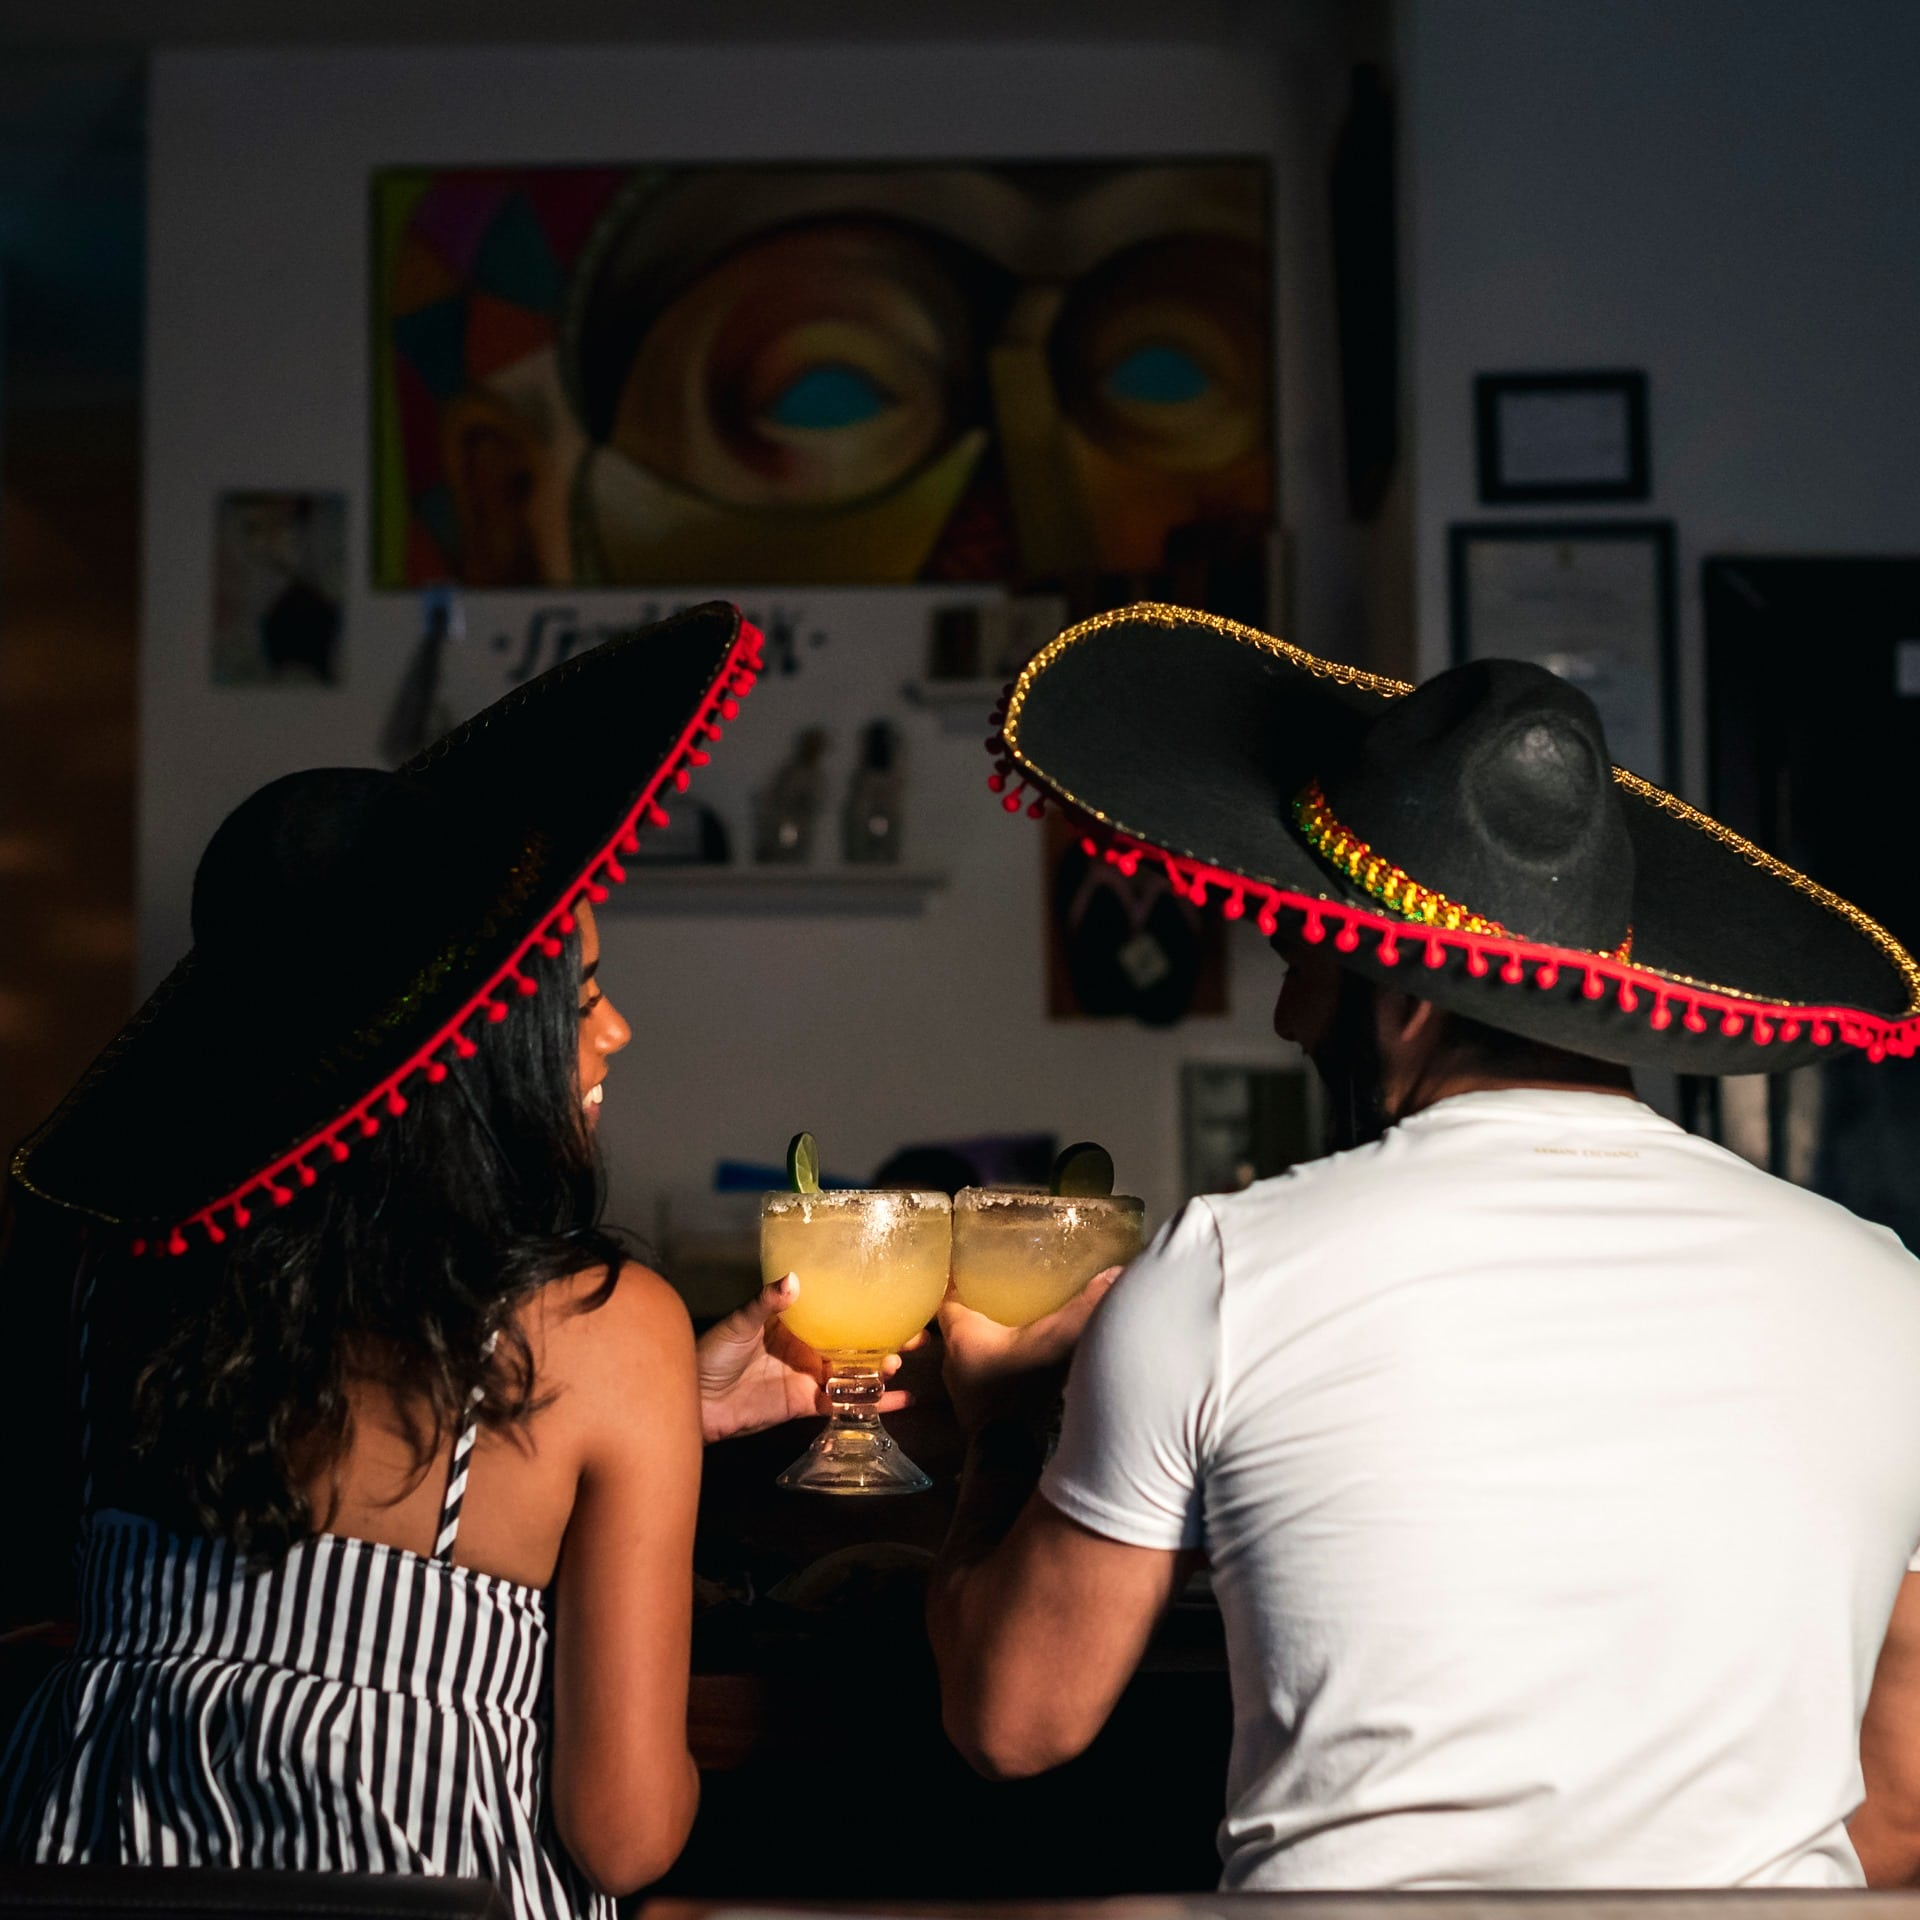 A couple toasting with margaritas and wearing mariachi hats